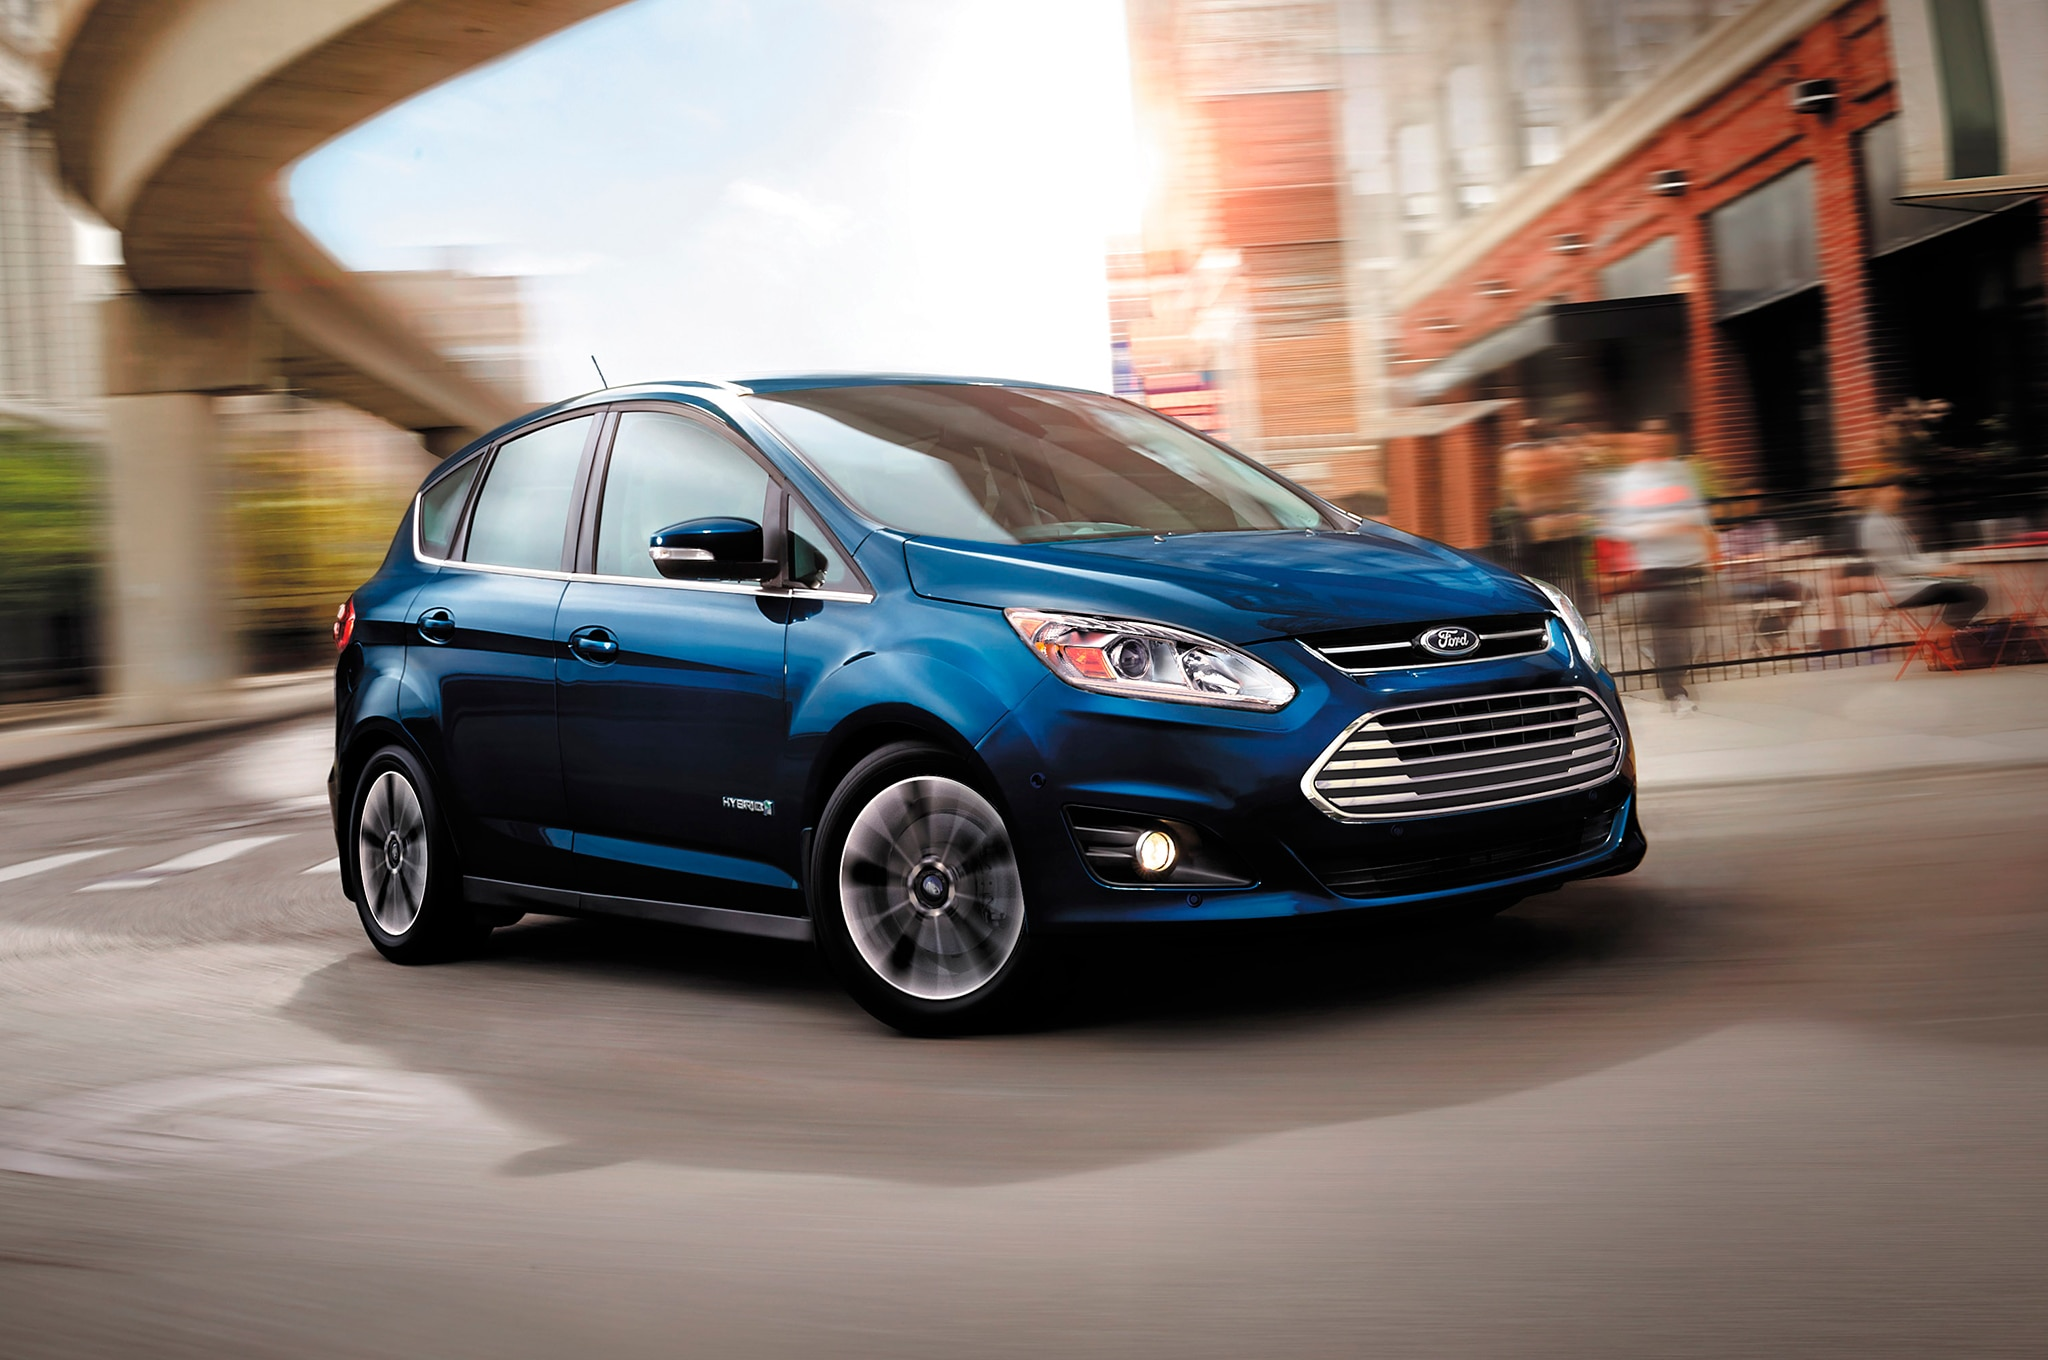 2017 ford c max receives new titanium trim lower starting price automobile magazine. Black Bedroom Furniture Sets. Home Design Ideas